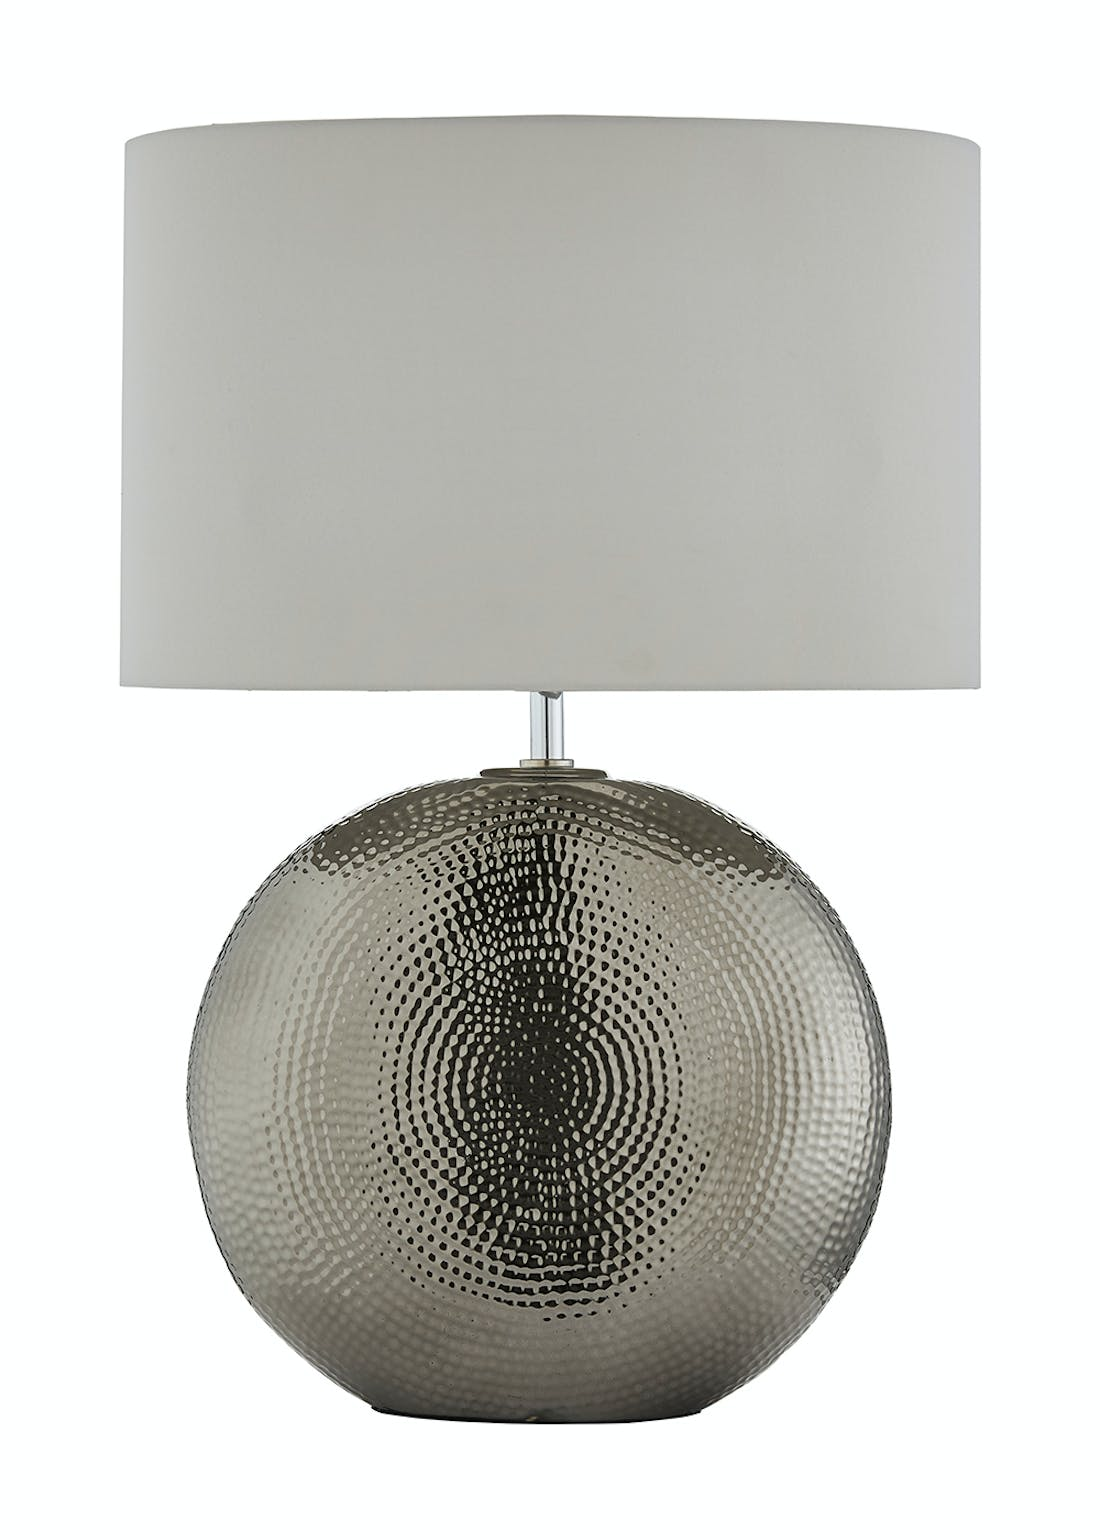 Hammered Base Table Lamp (H58 x W23cm x D40cm)